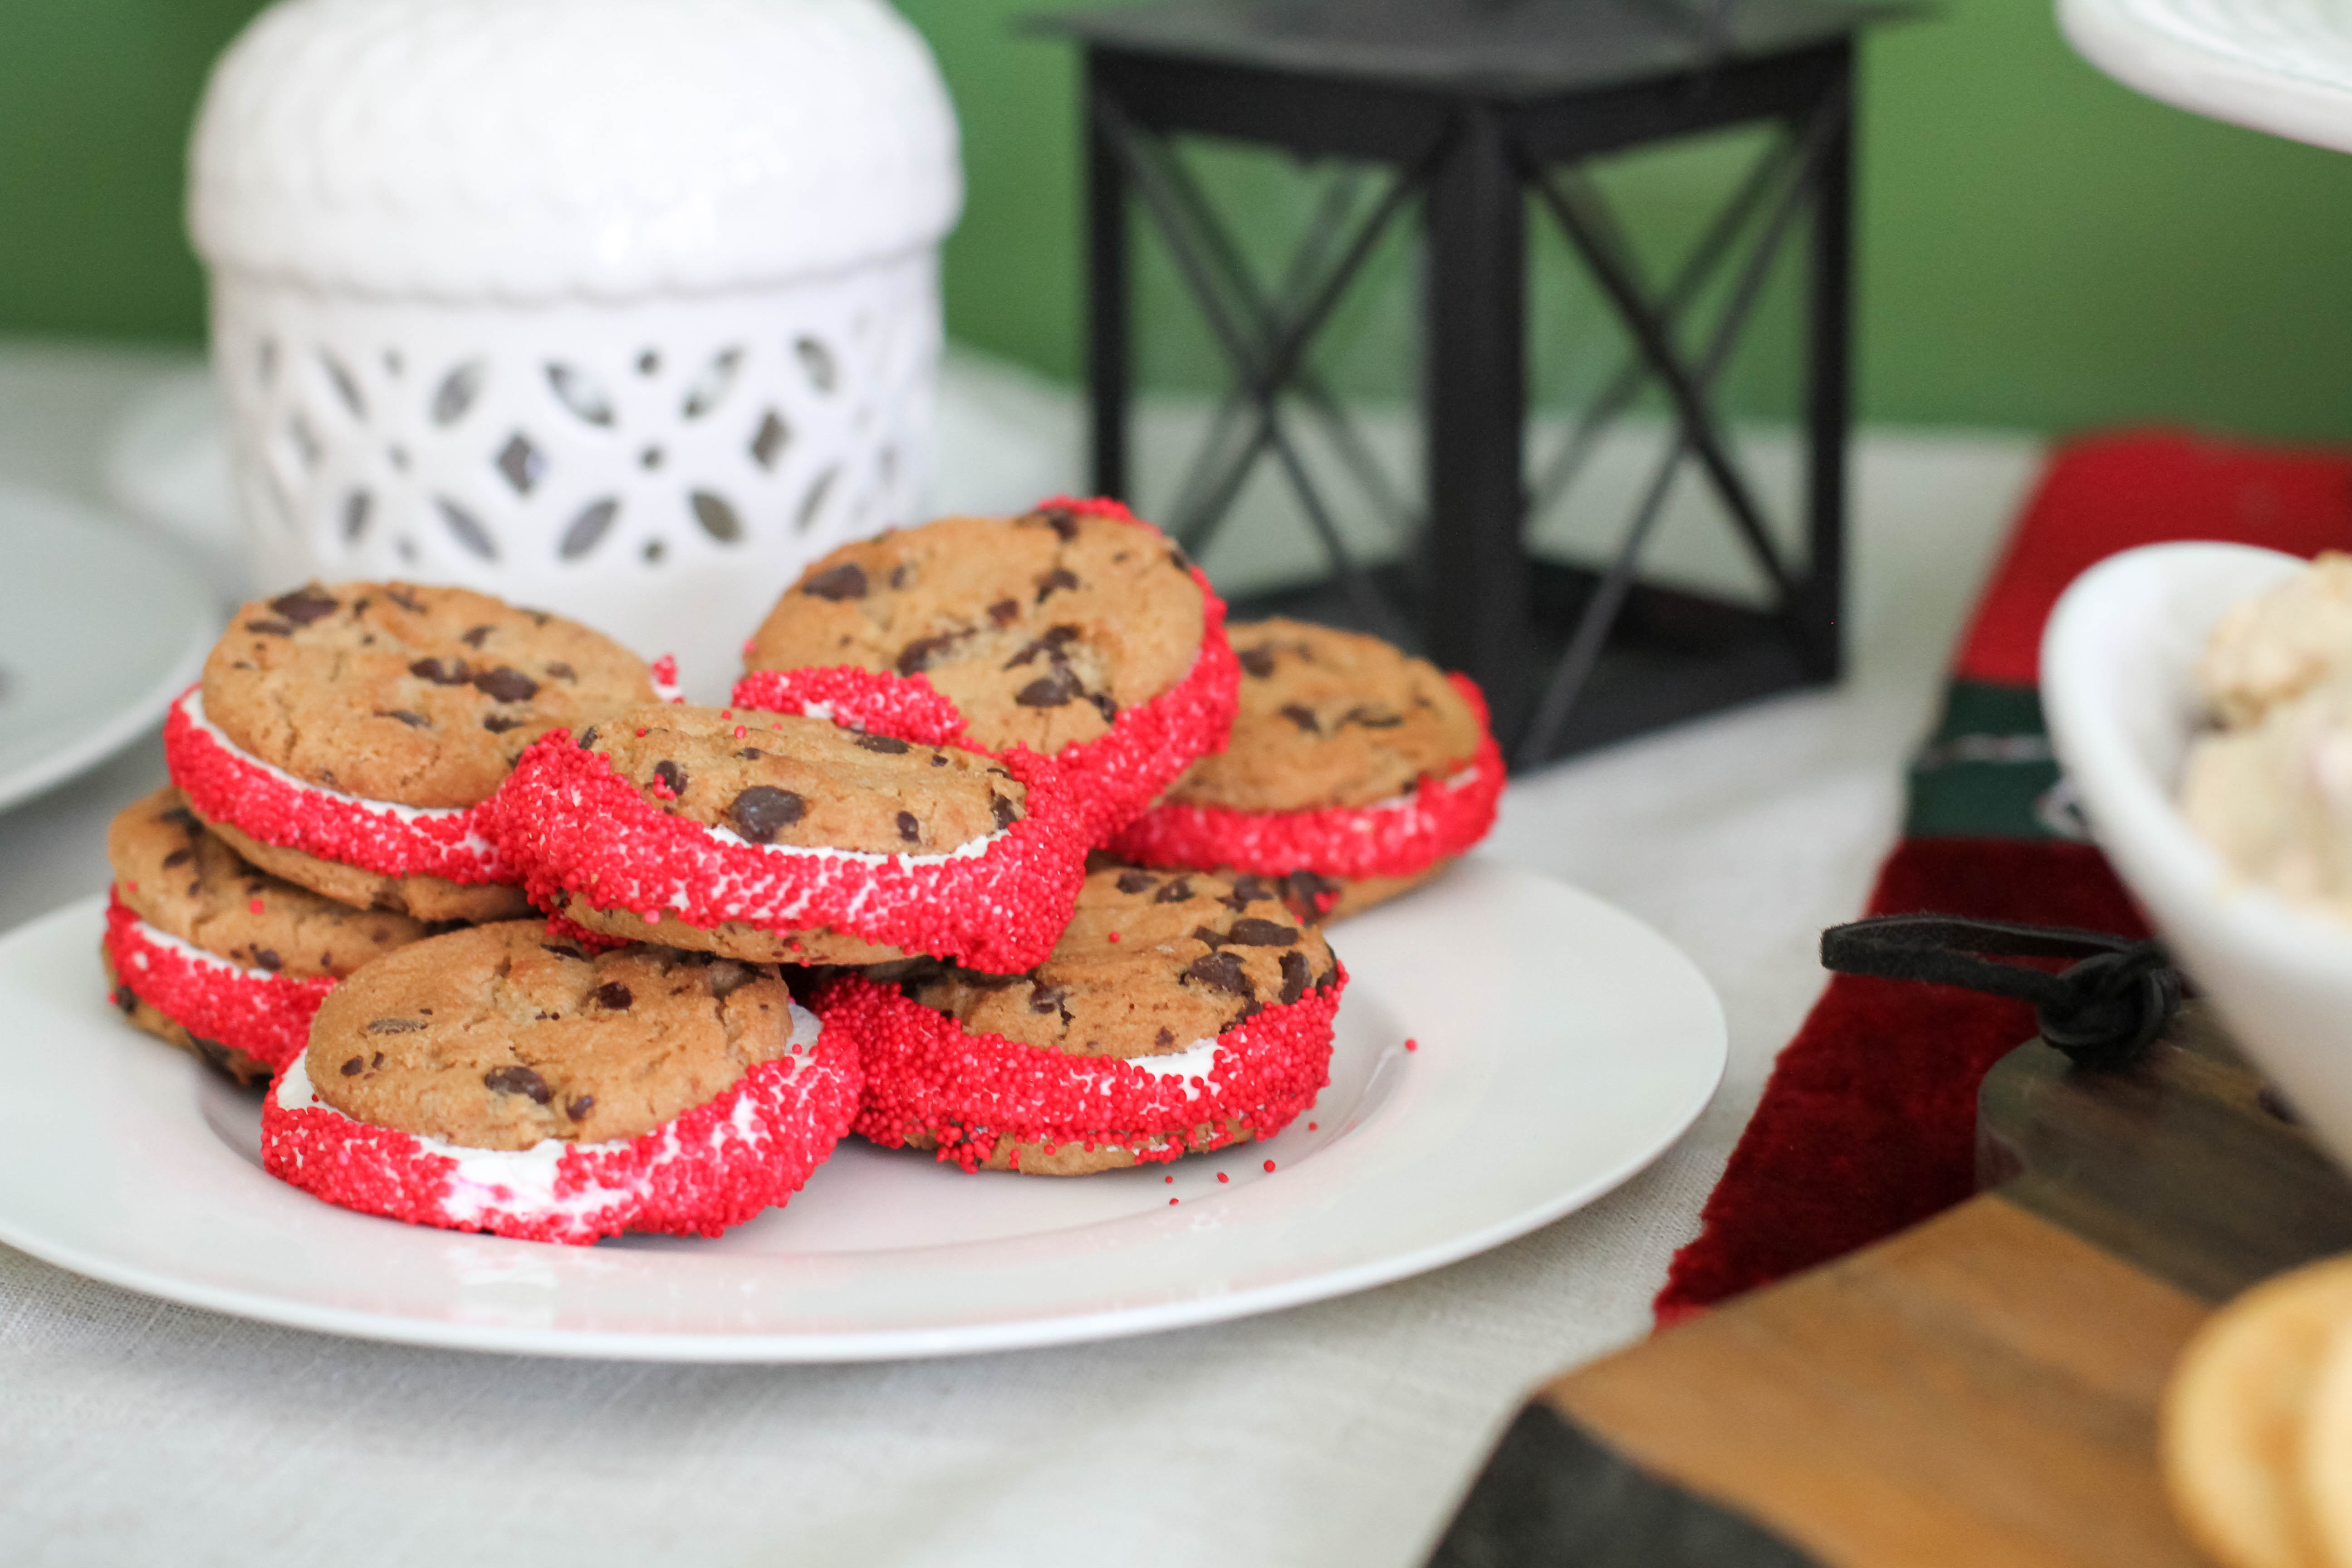 stuffed chips ahoy cookies